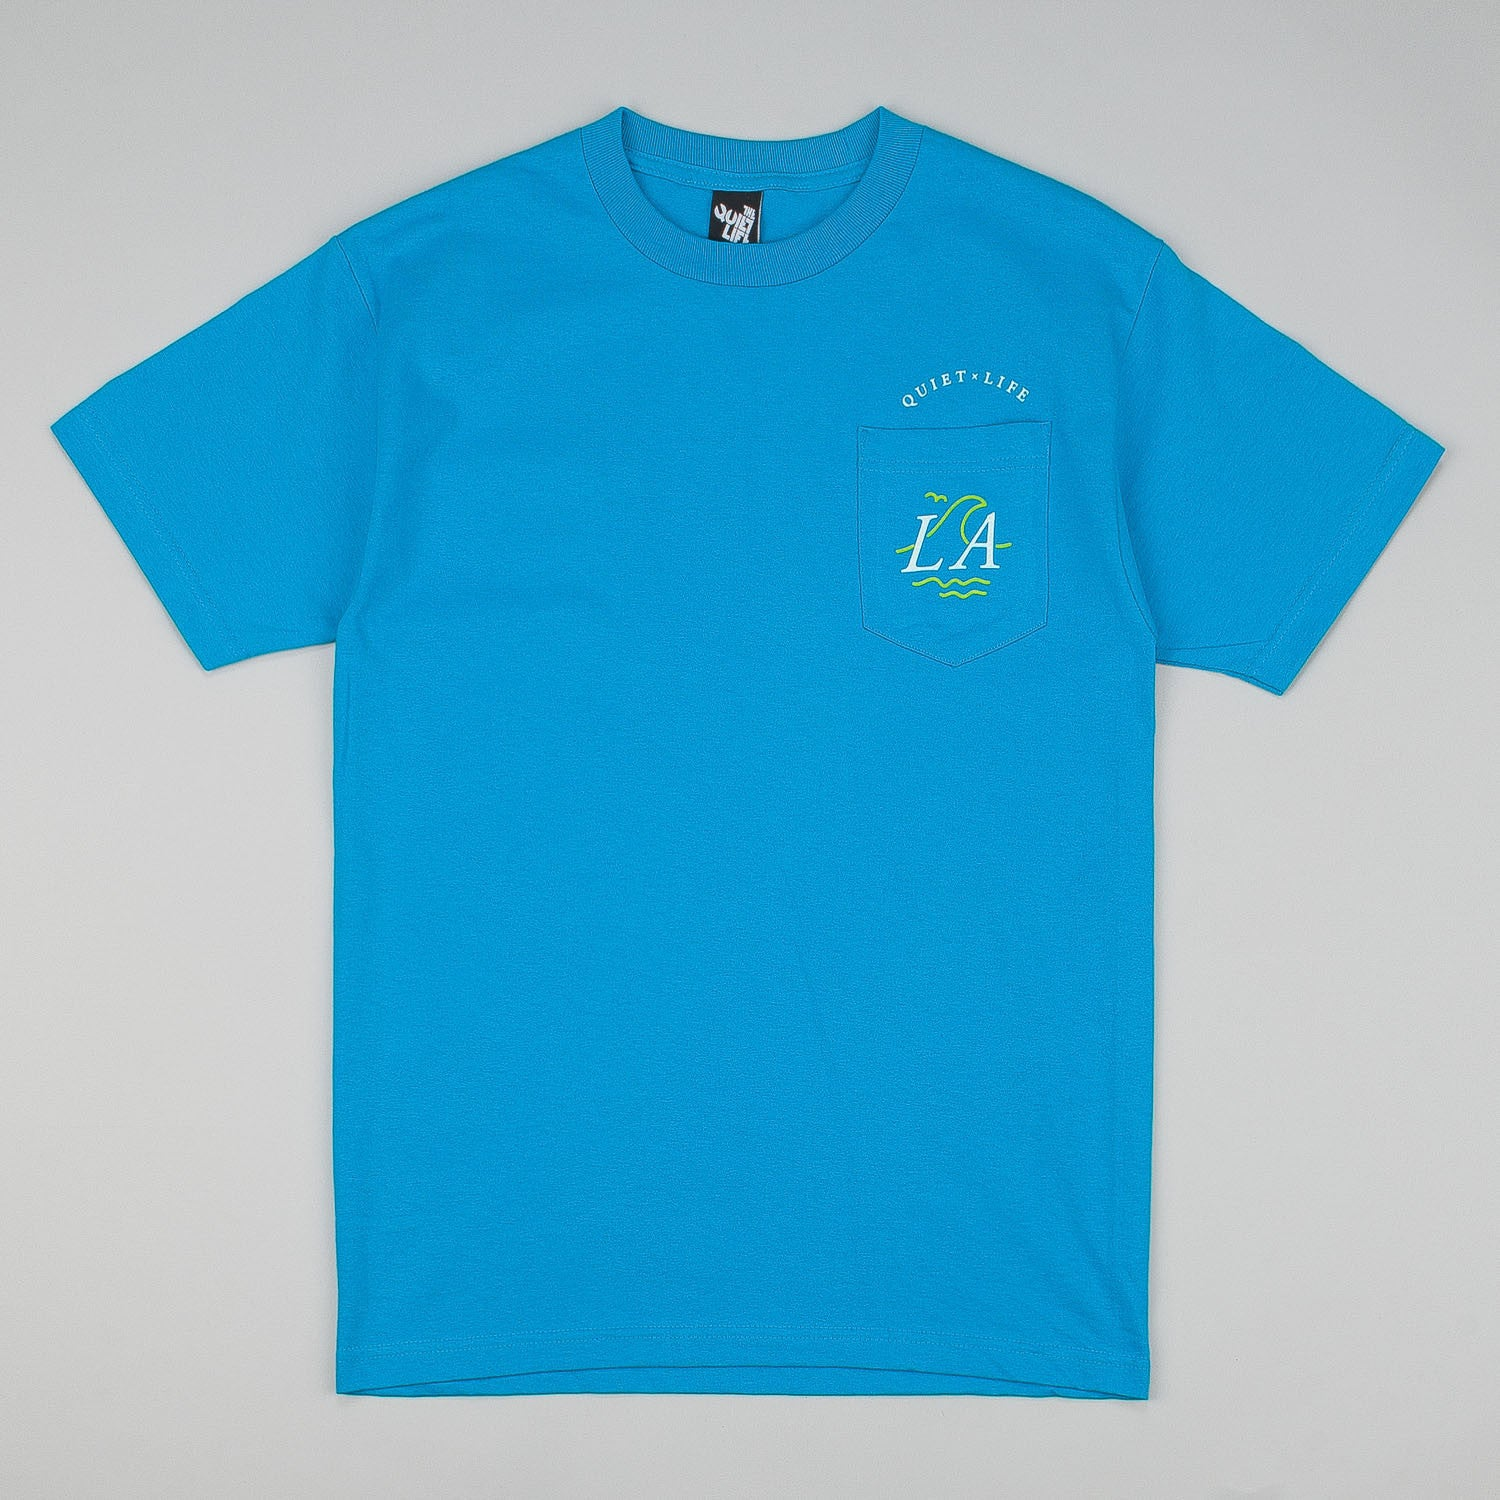 The Quiet Life LA Wave Pocket T-Shirt